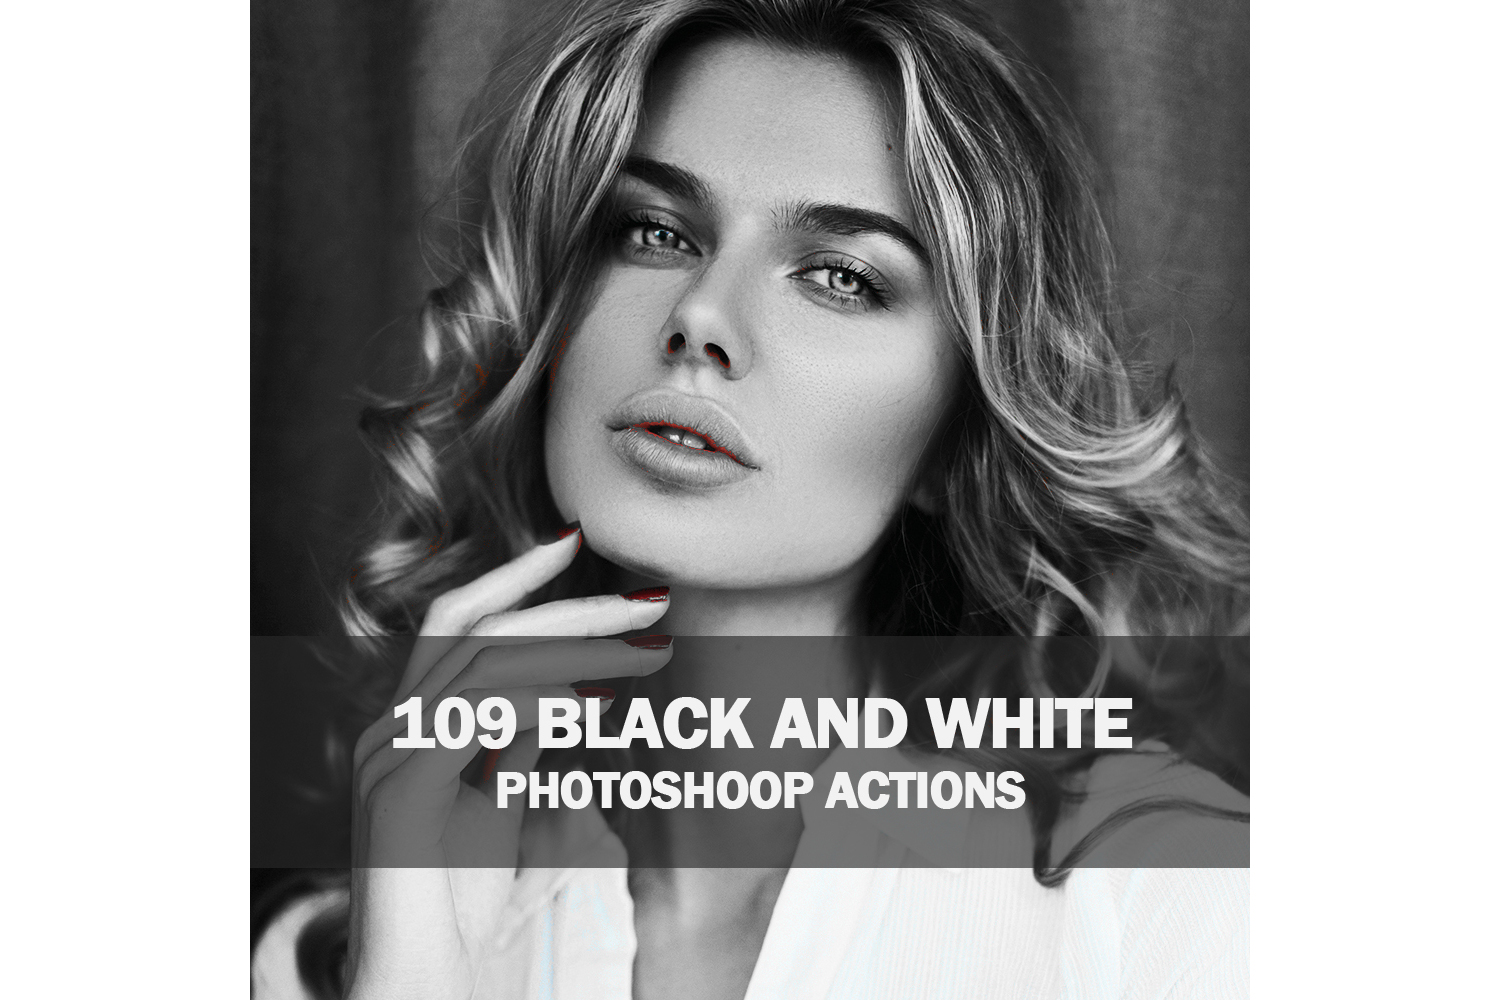 109 Black And White Photoshoop Actions Collection (Action for photoshop CS5,CS6,CC) example image 1